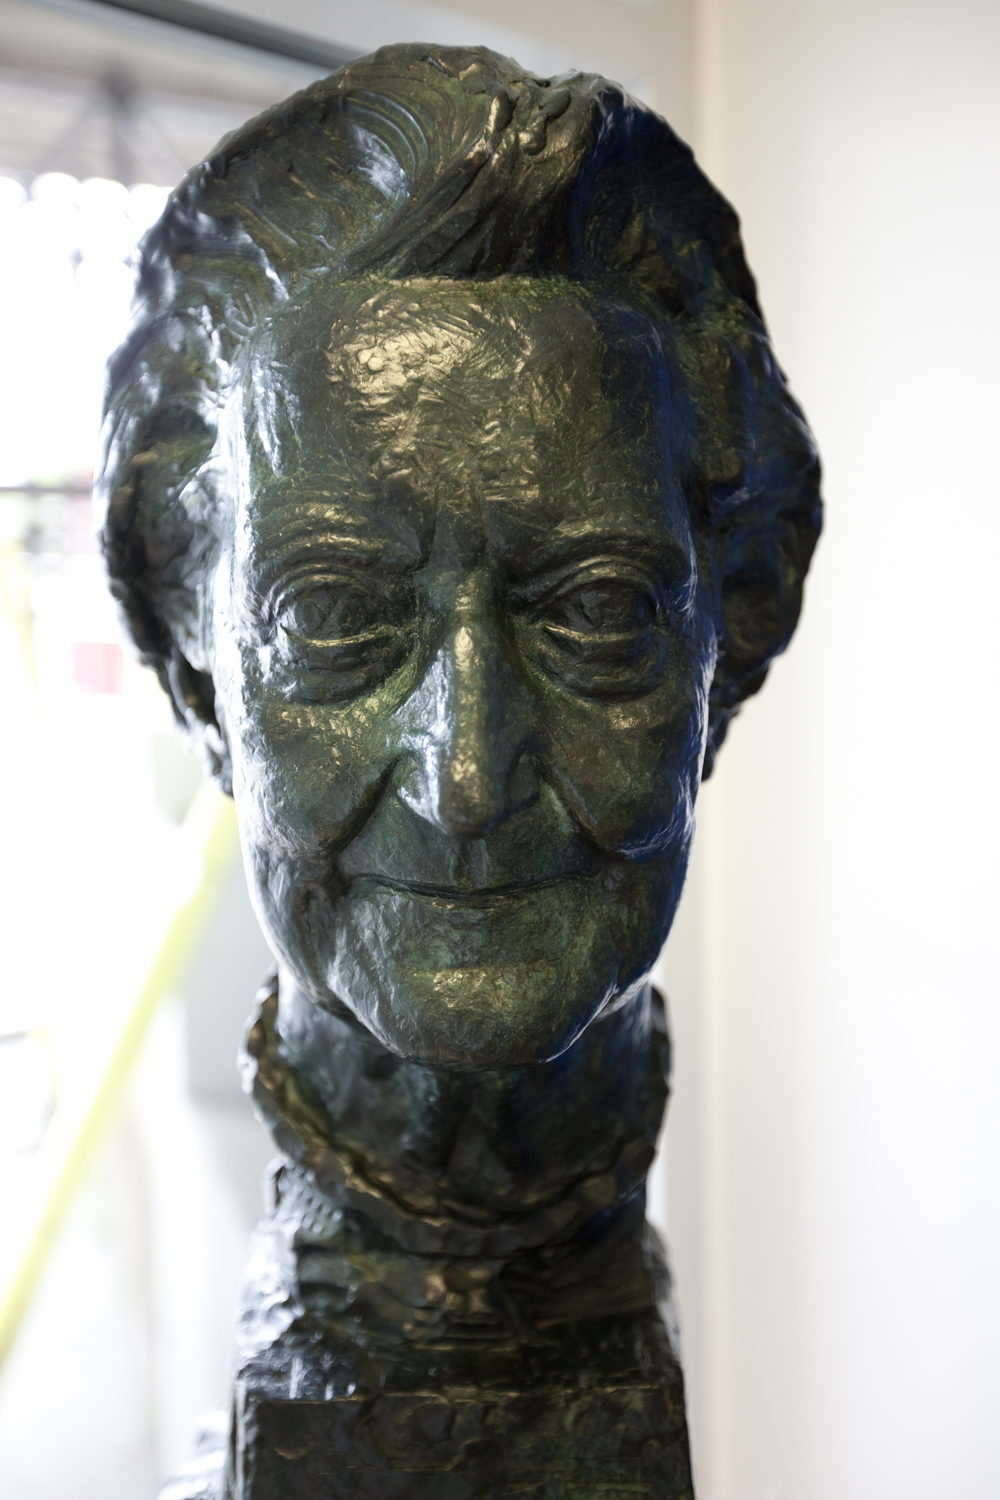 Cicely Saunders bust, St Christopher's hospice